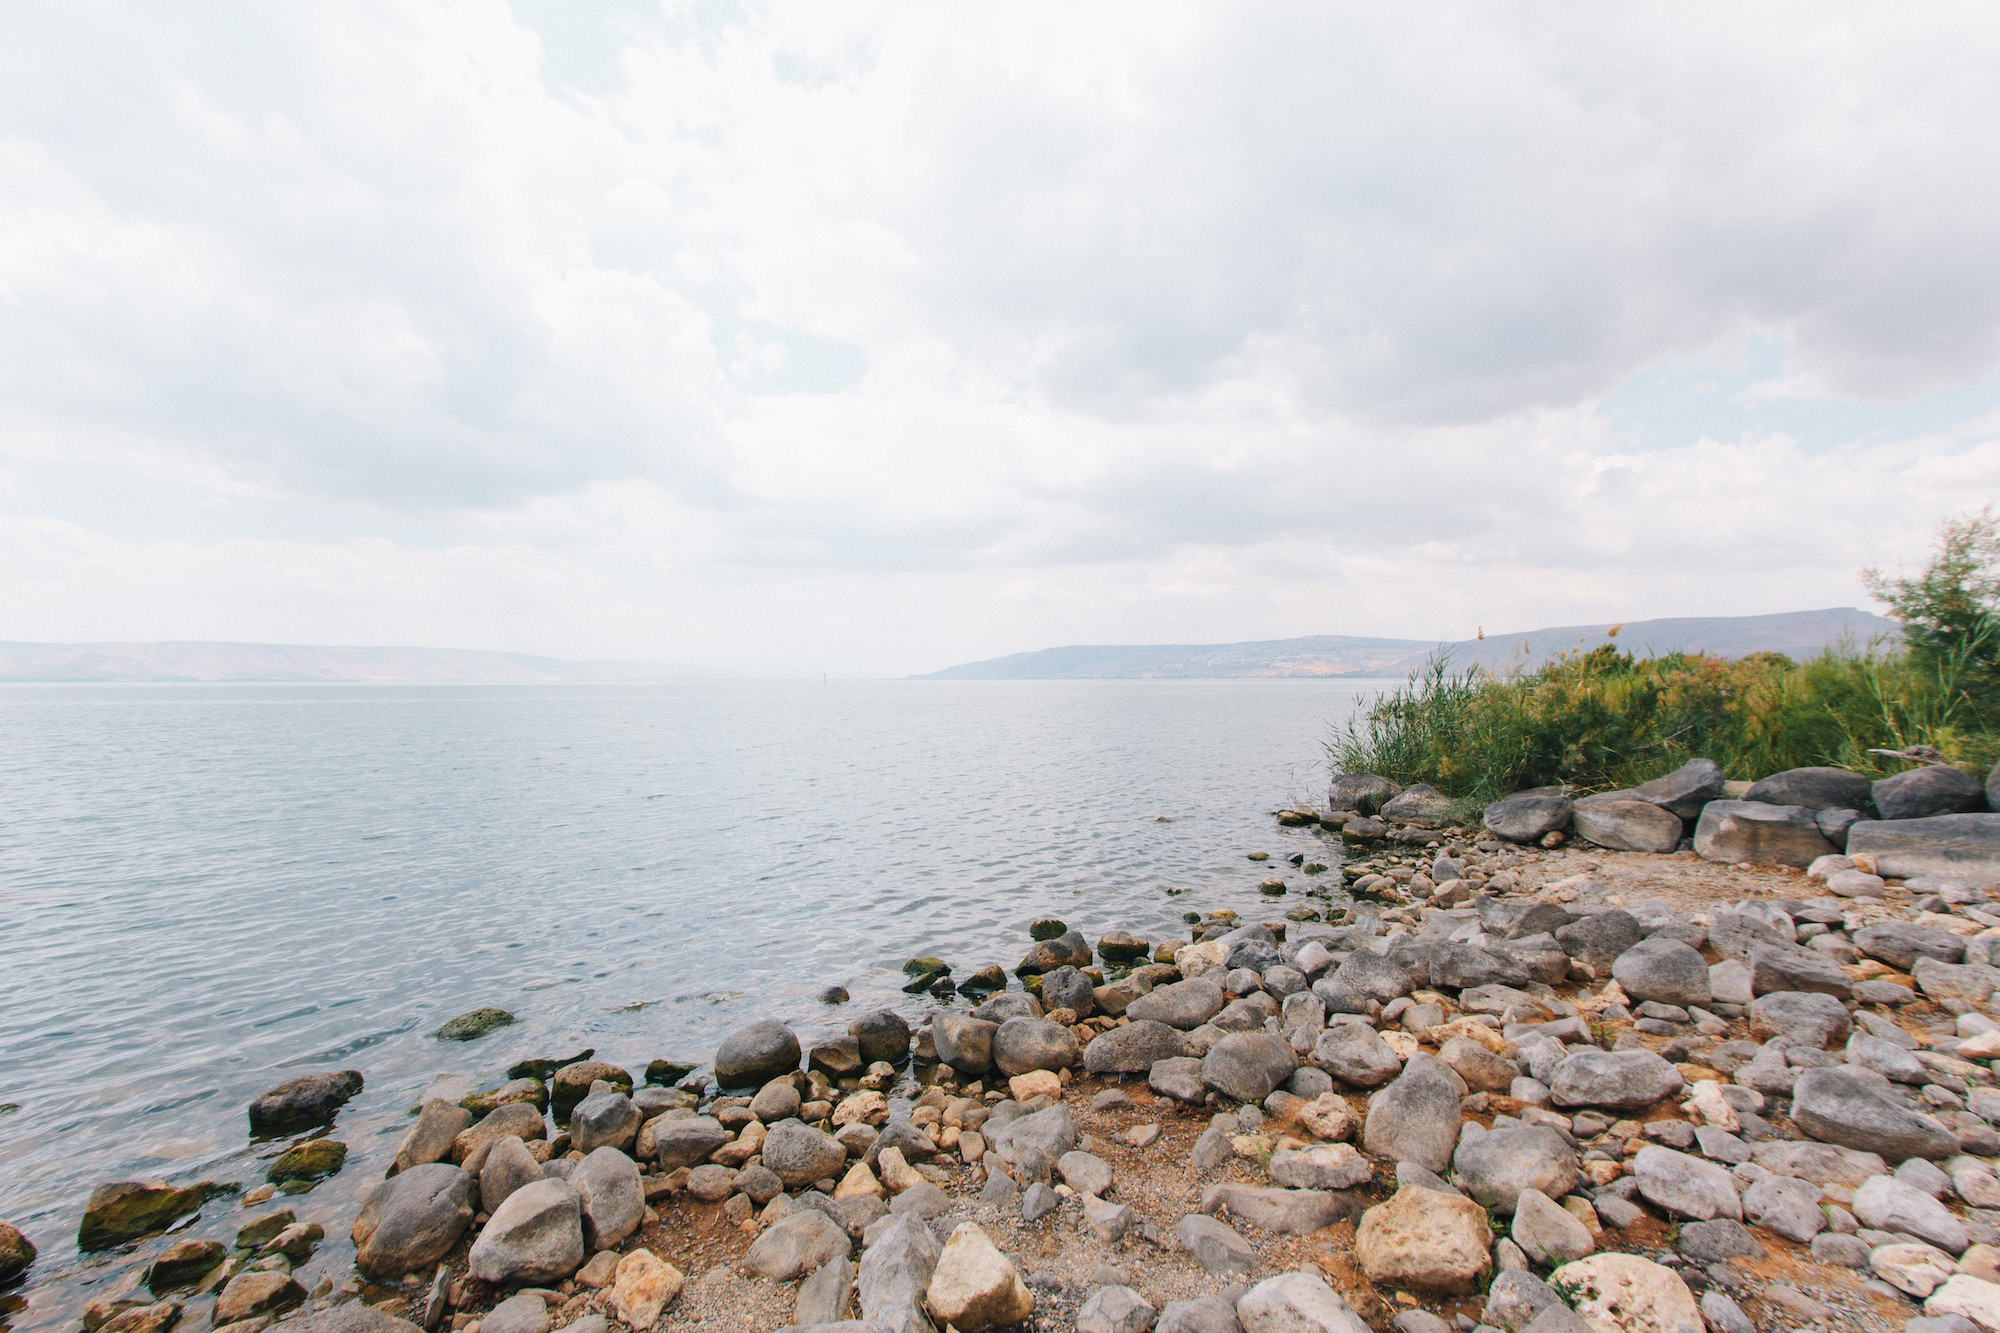 Sea of Galilee - There are lots of little towns and fishing villages dotted around Galilee with many offering incredible insights into history. We visited Capernaum (where Jesus lived), Magdala (ancient ruins of a town) and Tiberia (the most modern town in the area).